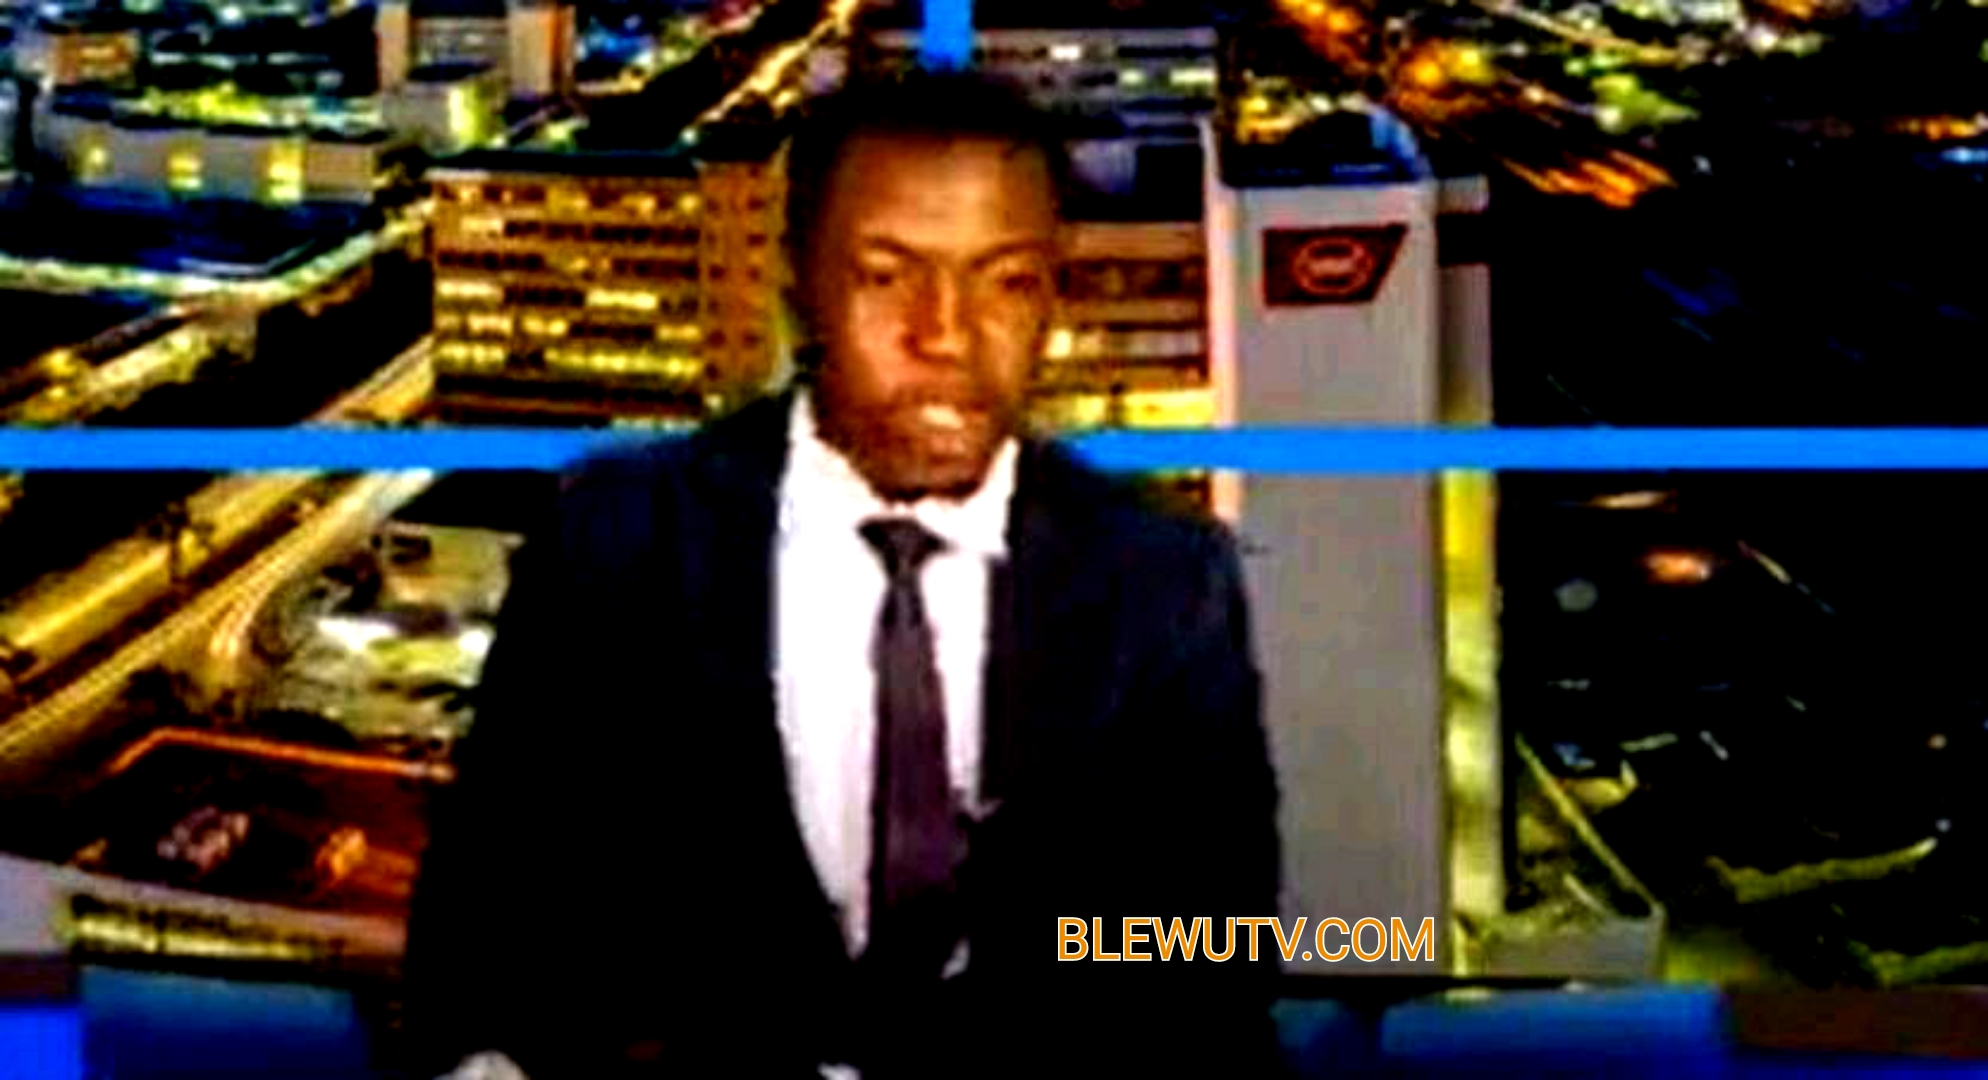 """Angry news anchor pauses live TV report to demand salary, says """"we're human beings"""""""